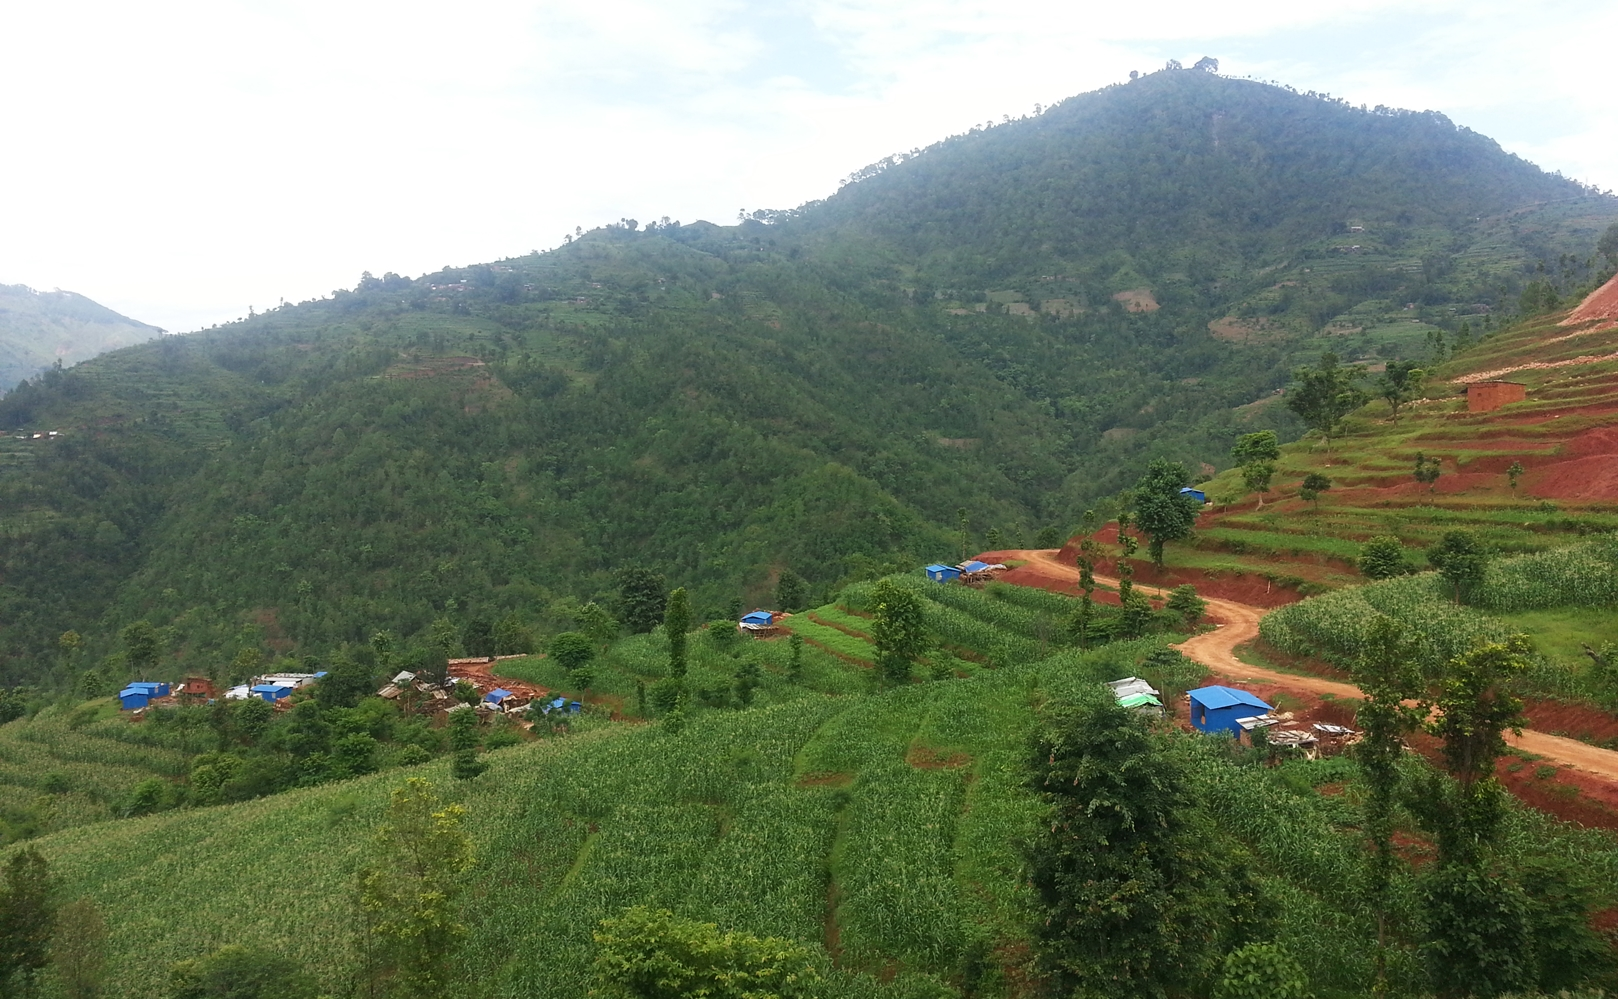 Our local partner LTD built zinc houses for 100 Dalit families in Baireni, Dhading